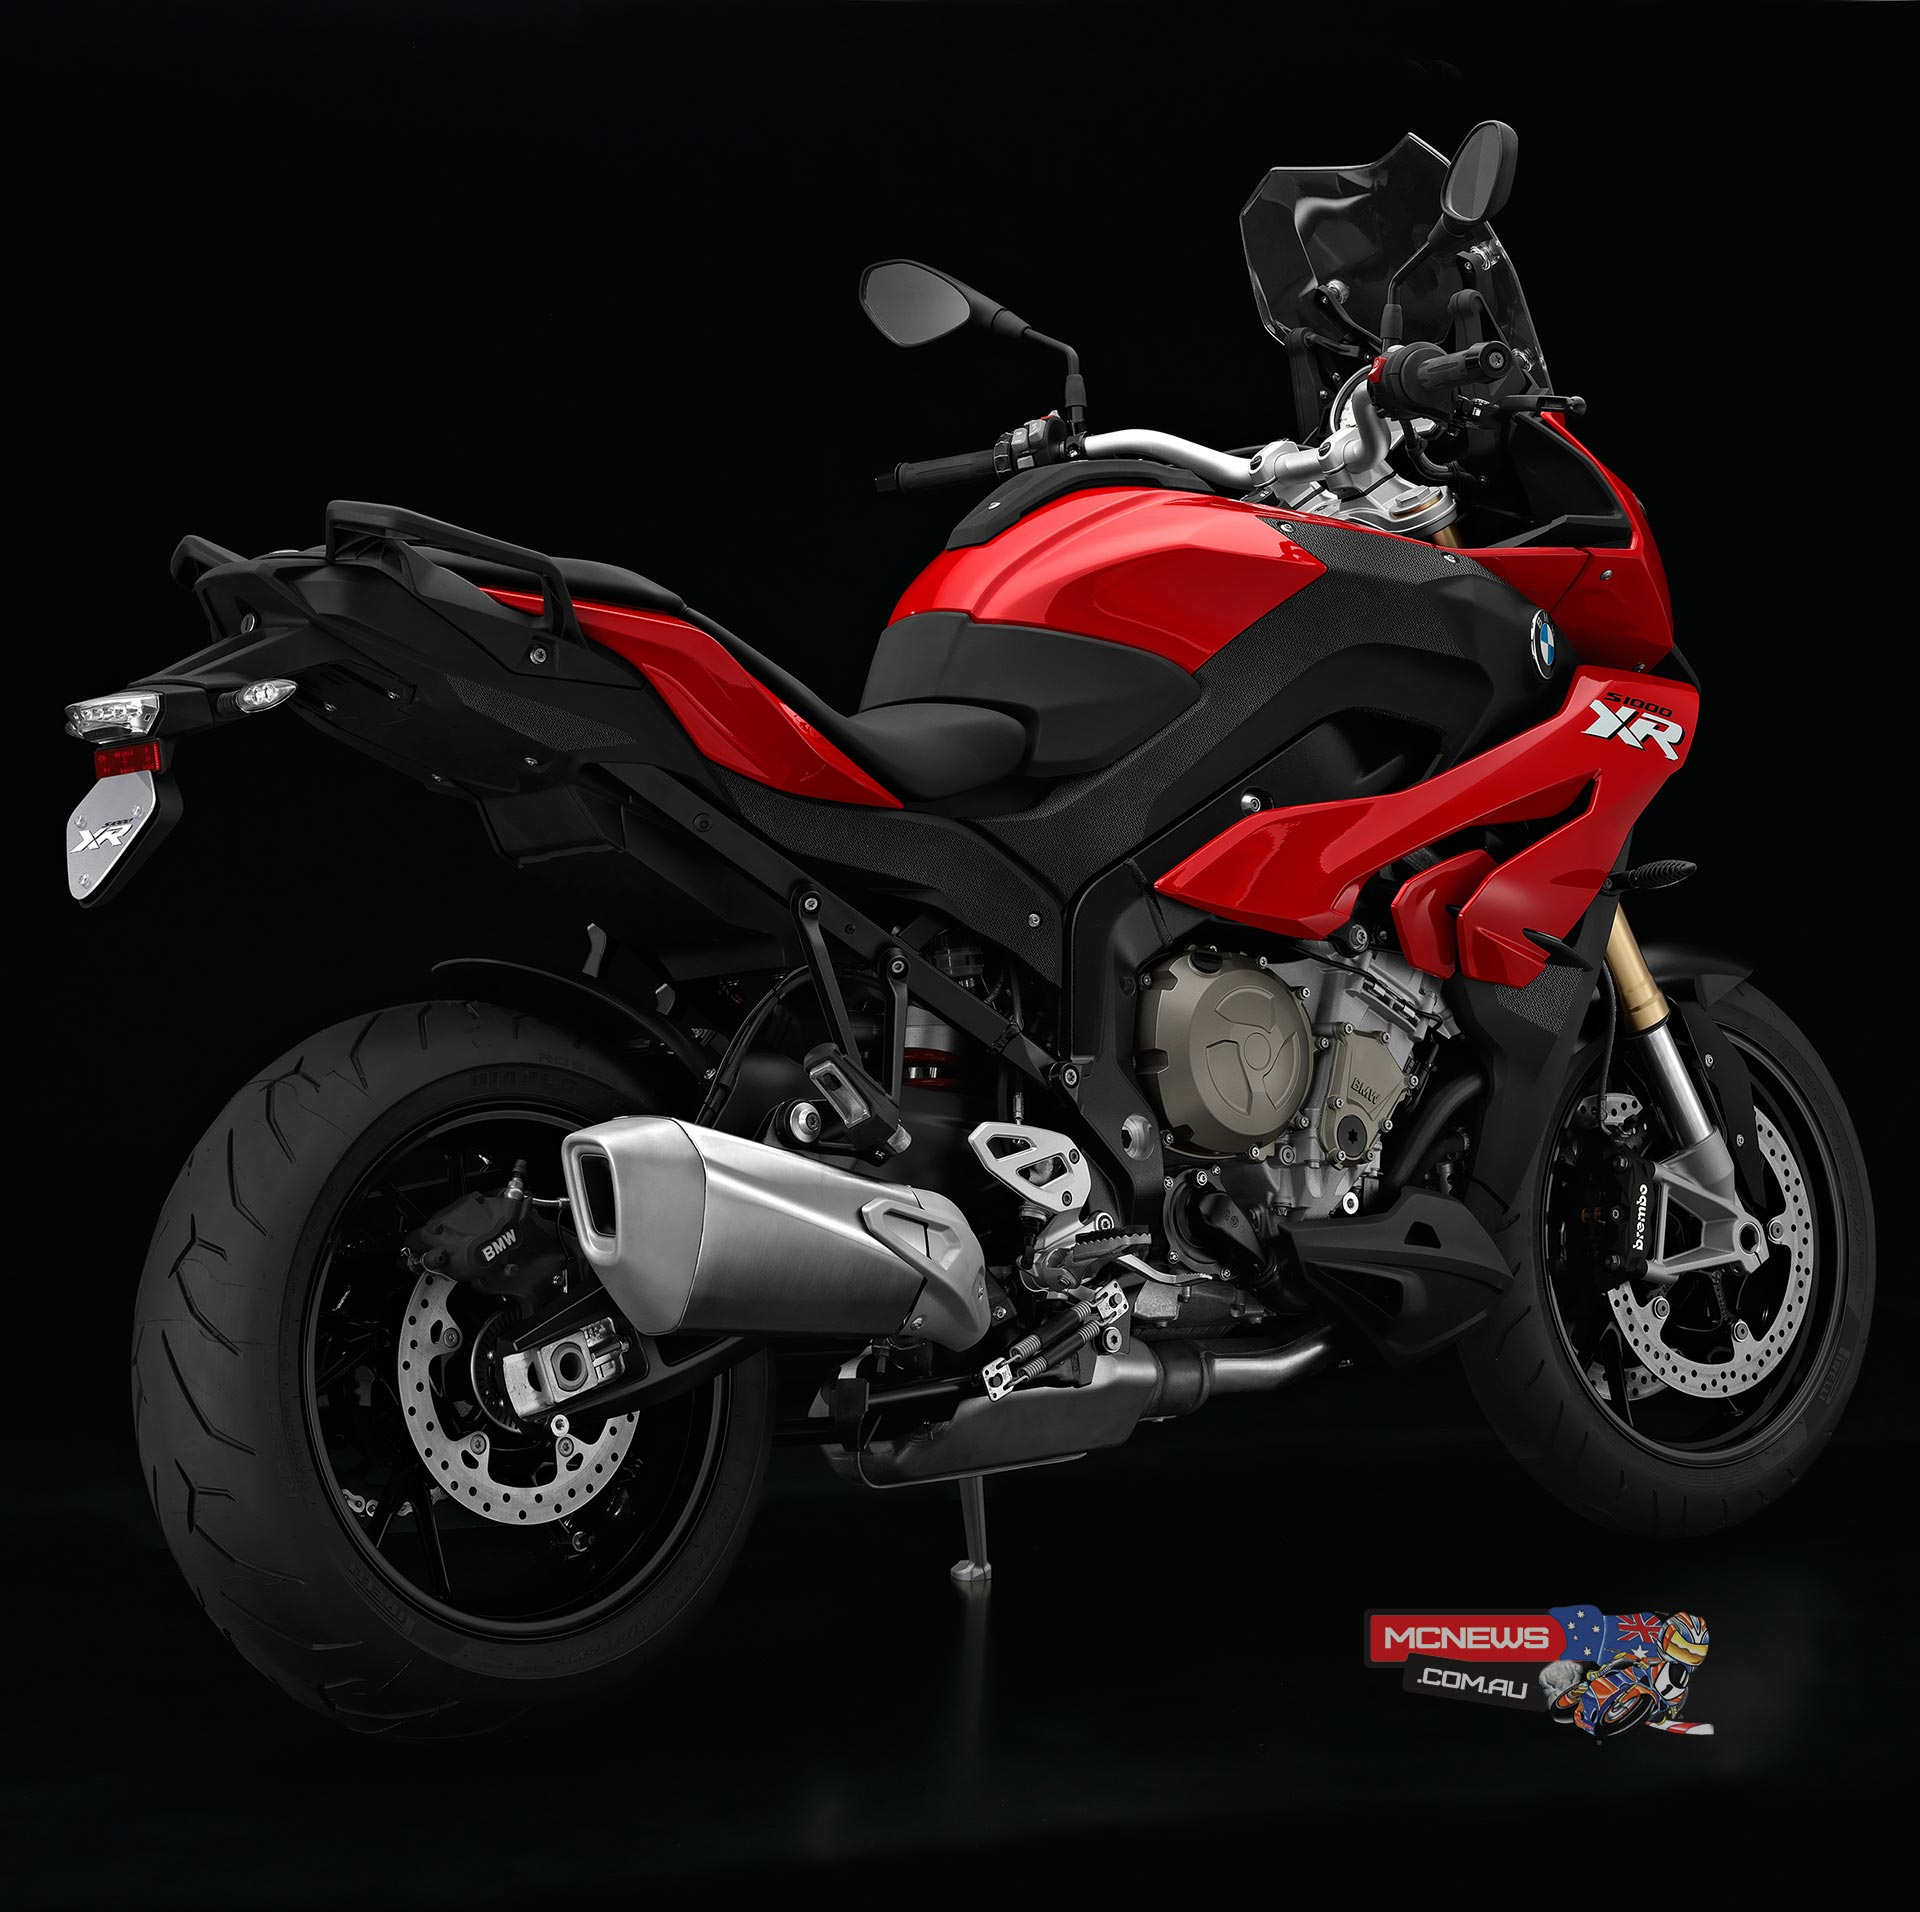 Bmw S 1000: BMW S 1000 XR - 1000cc All-roader